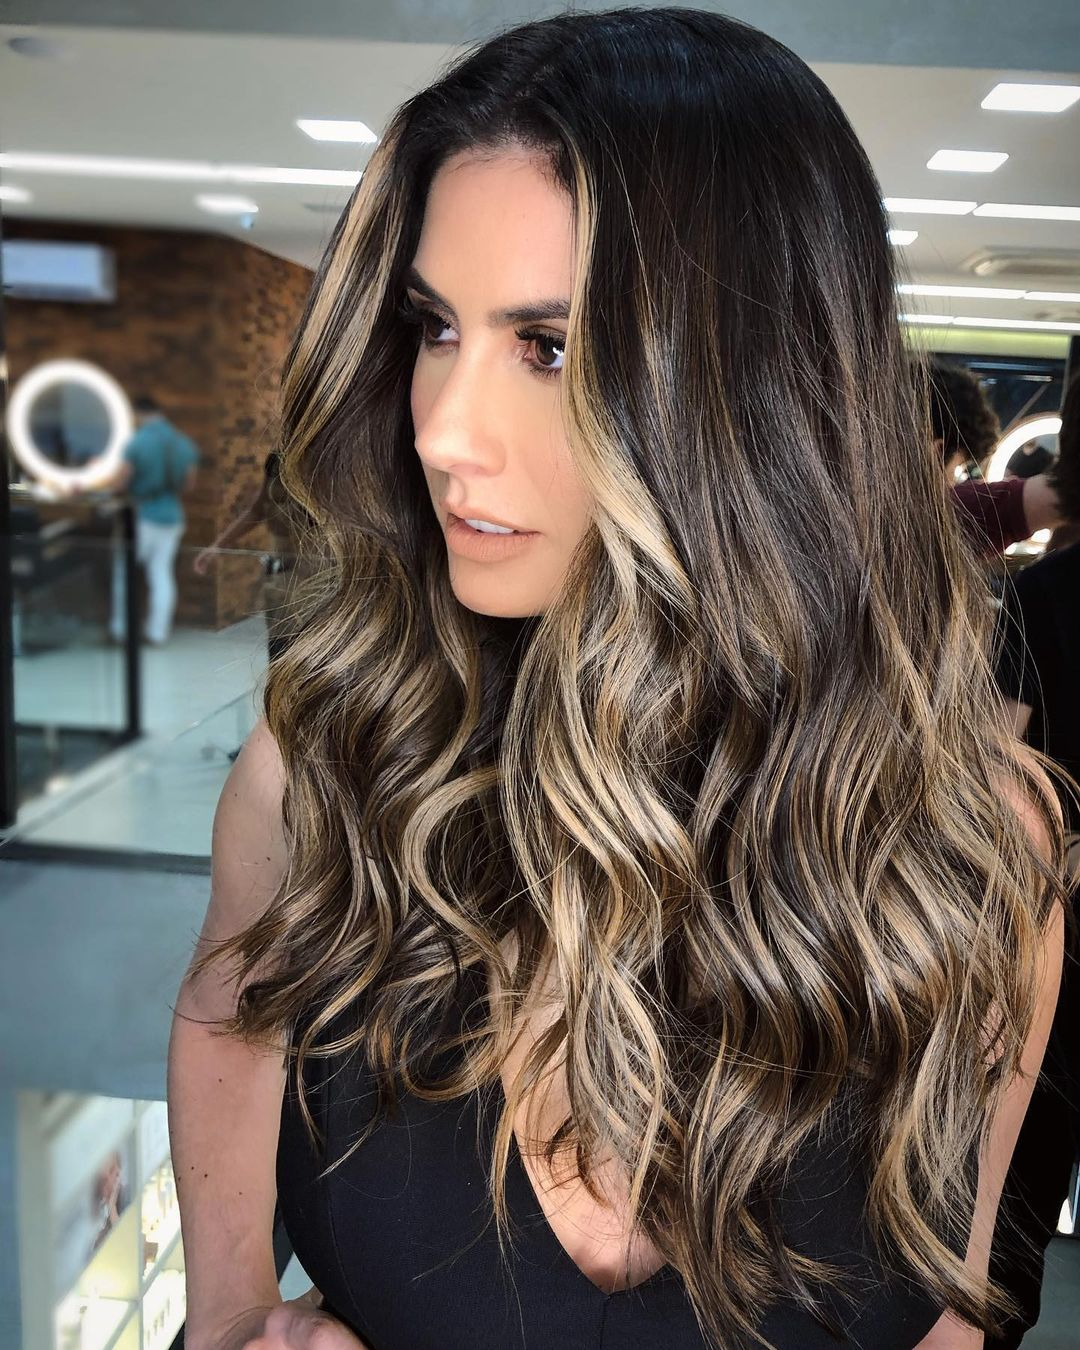 Black Hair With Blonde Highlights – Add Color To Your Black Hairstyle